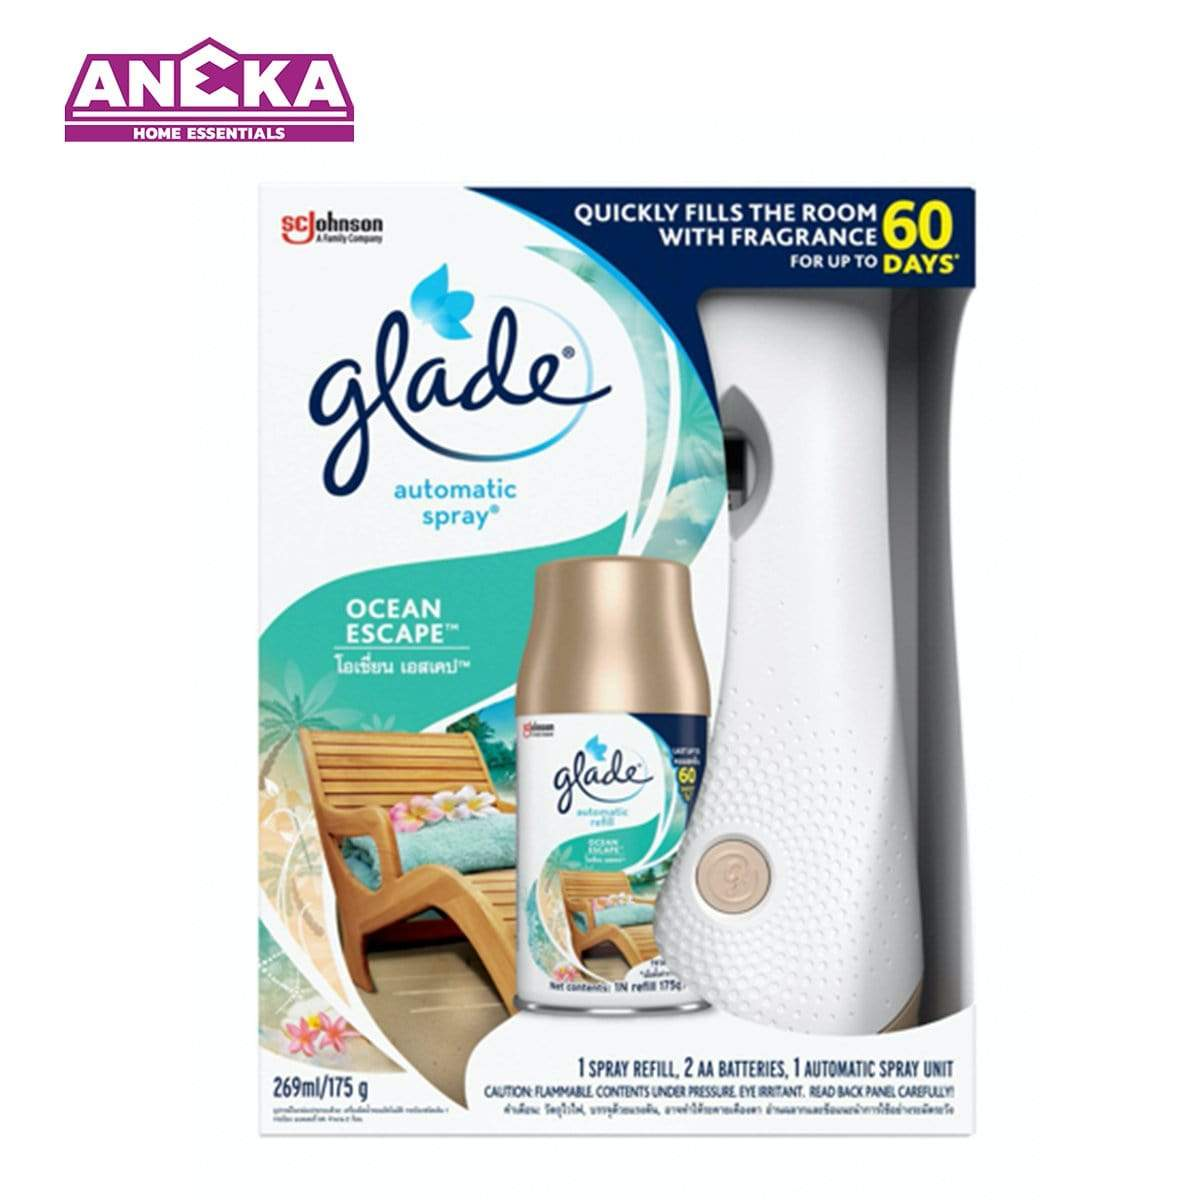 Glade Automatic Spray 3 in 1 Ocean Escape Air Freshener 175g